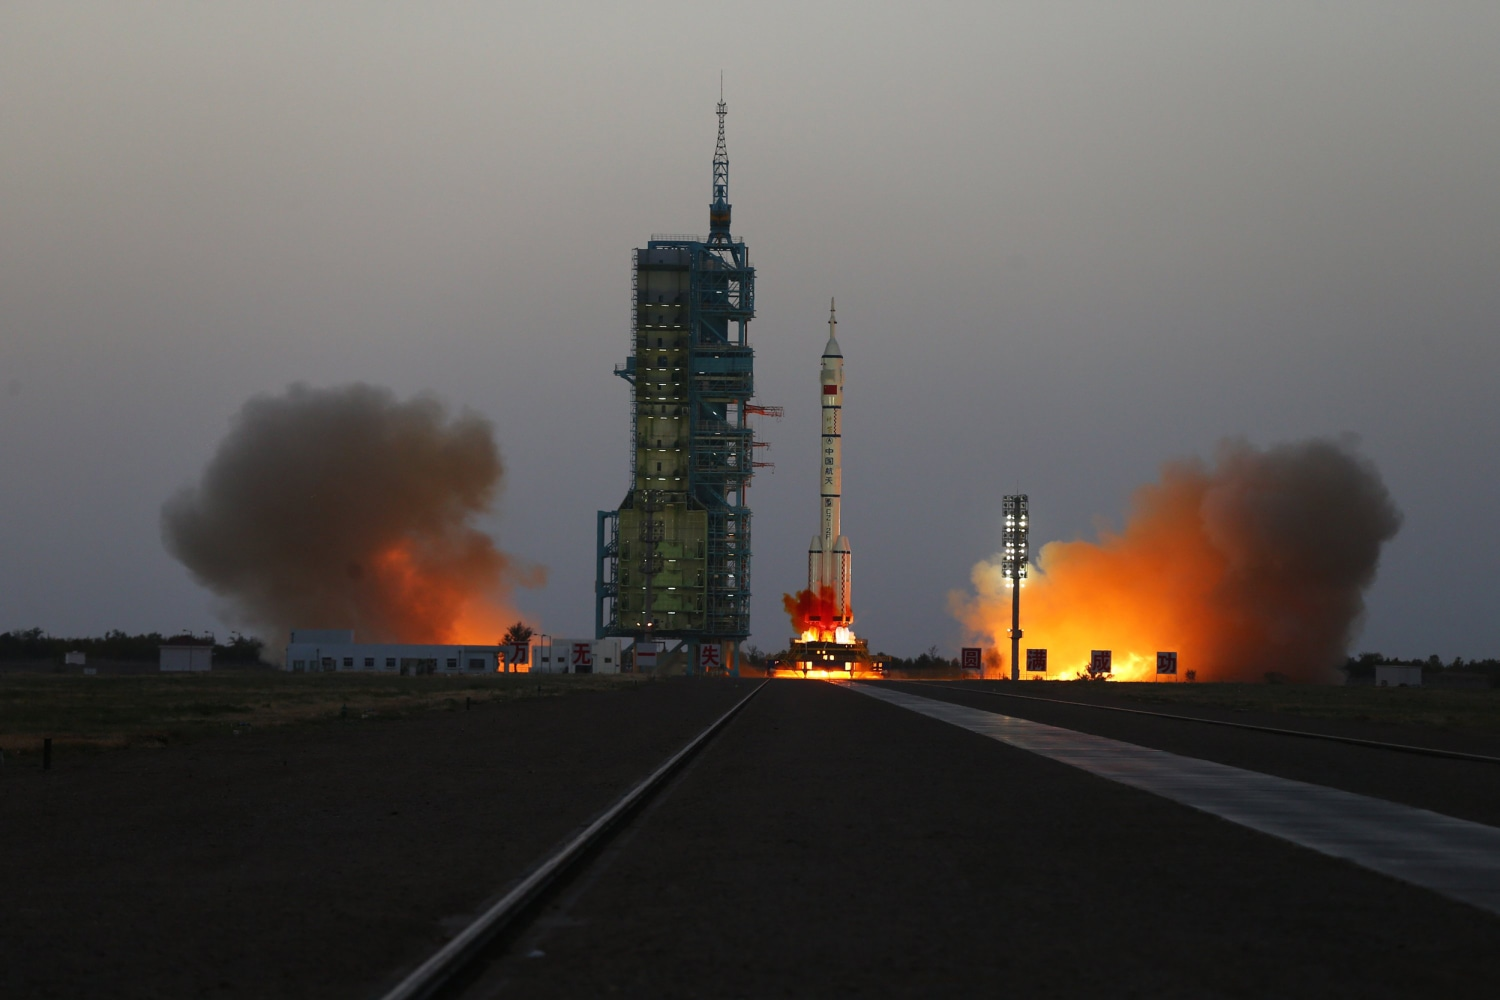 china amps up space program in race to challenge u s nbc news